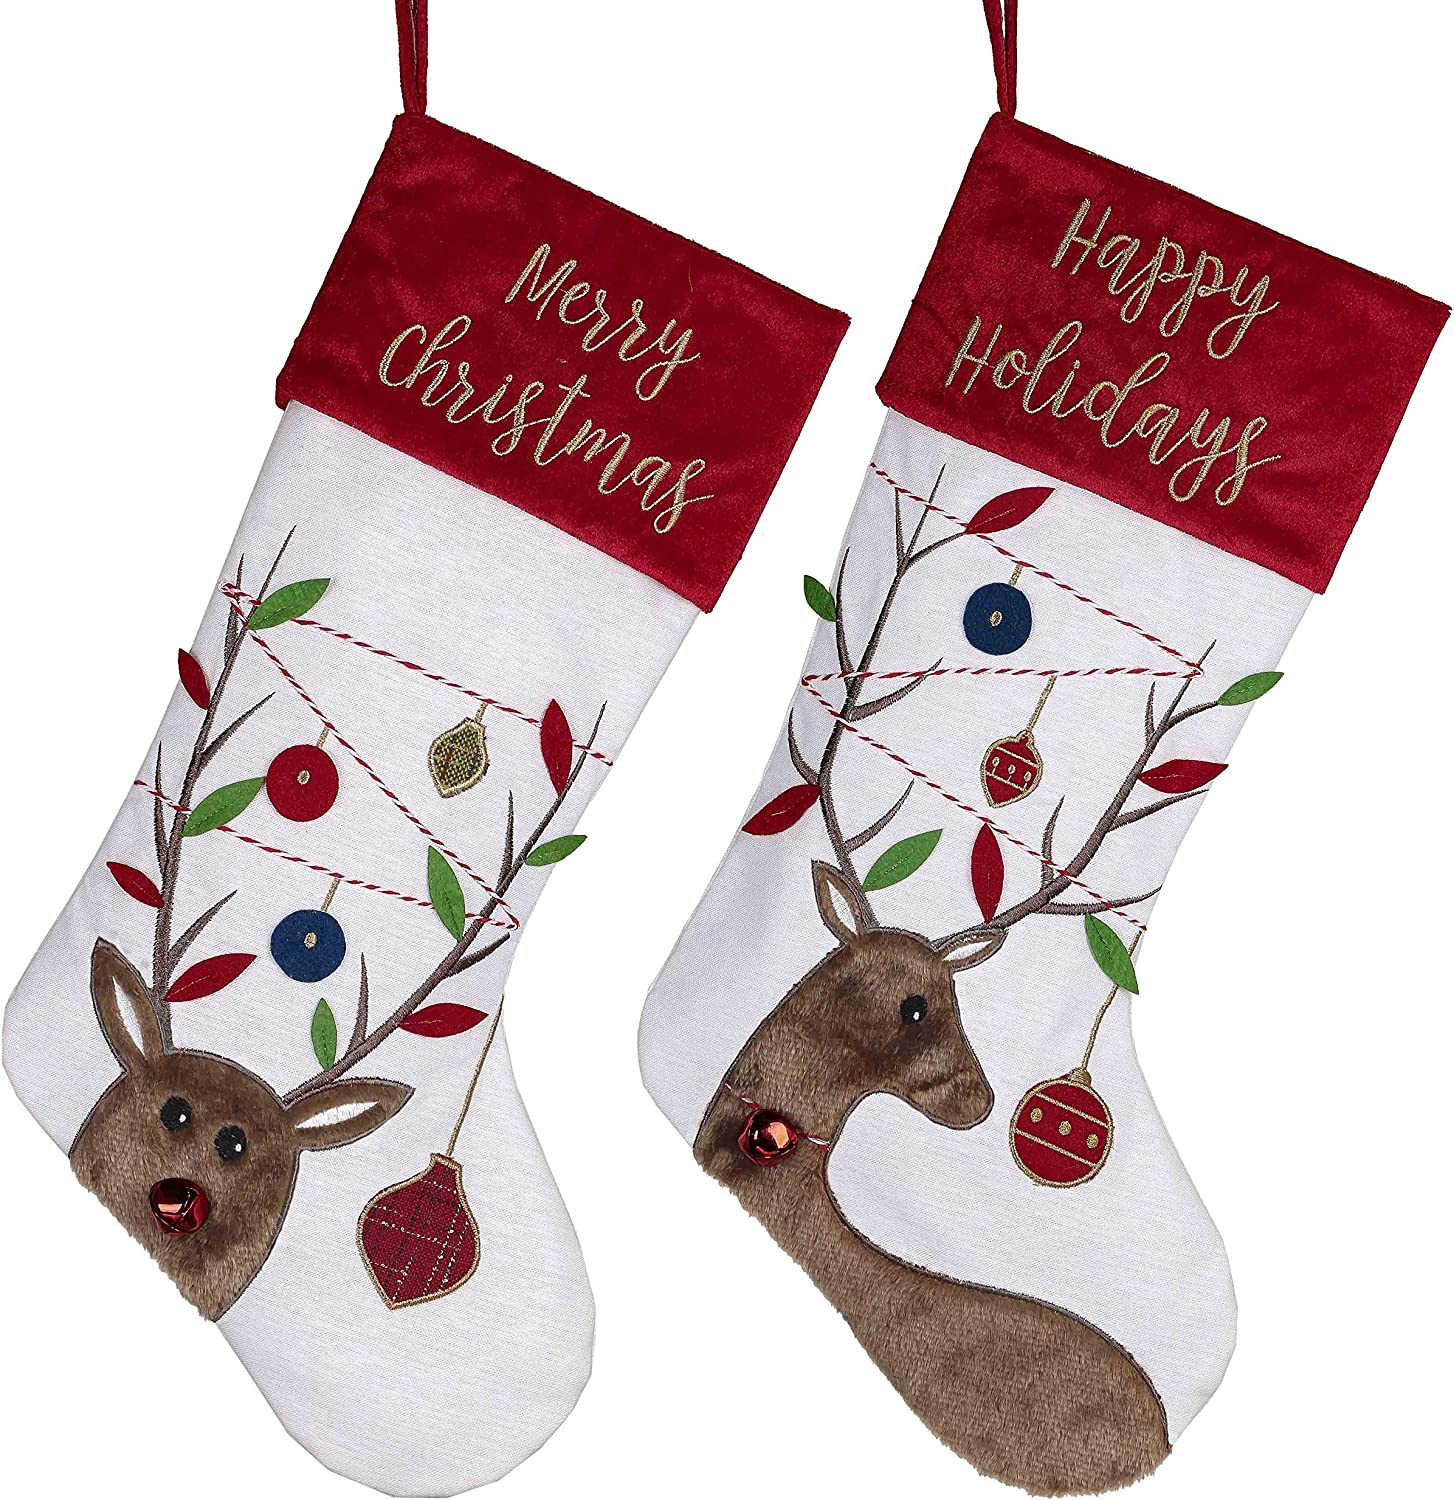 Valery Madelyn 21 inch 2 Joyful Sales Louisville-Jefferson County Mall Reindeer Stocking Pack Christmas